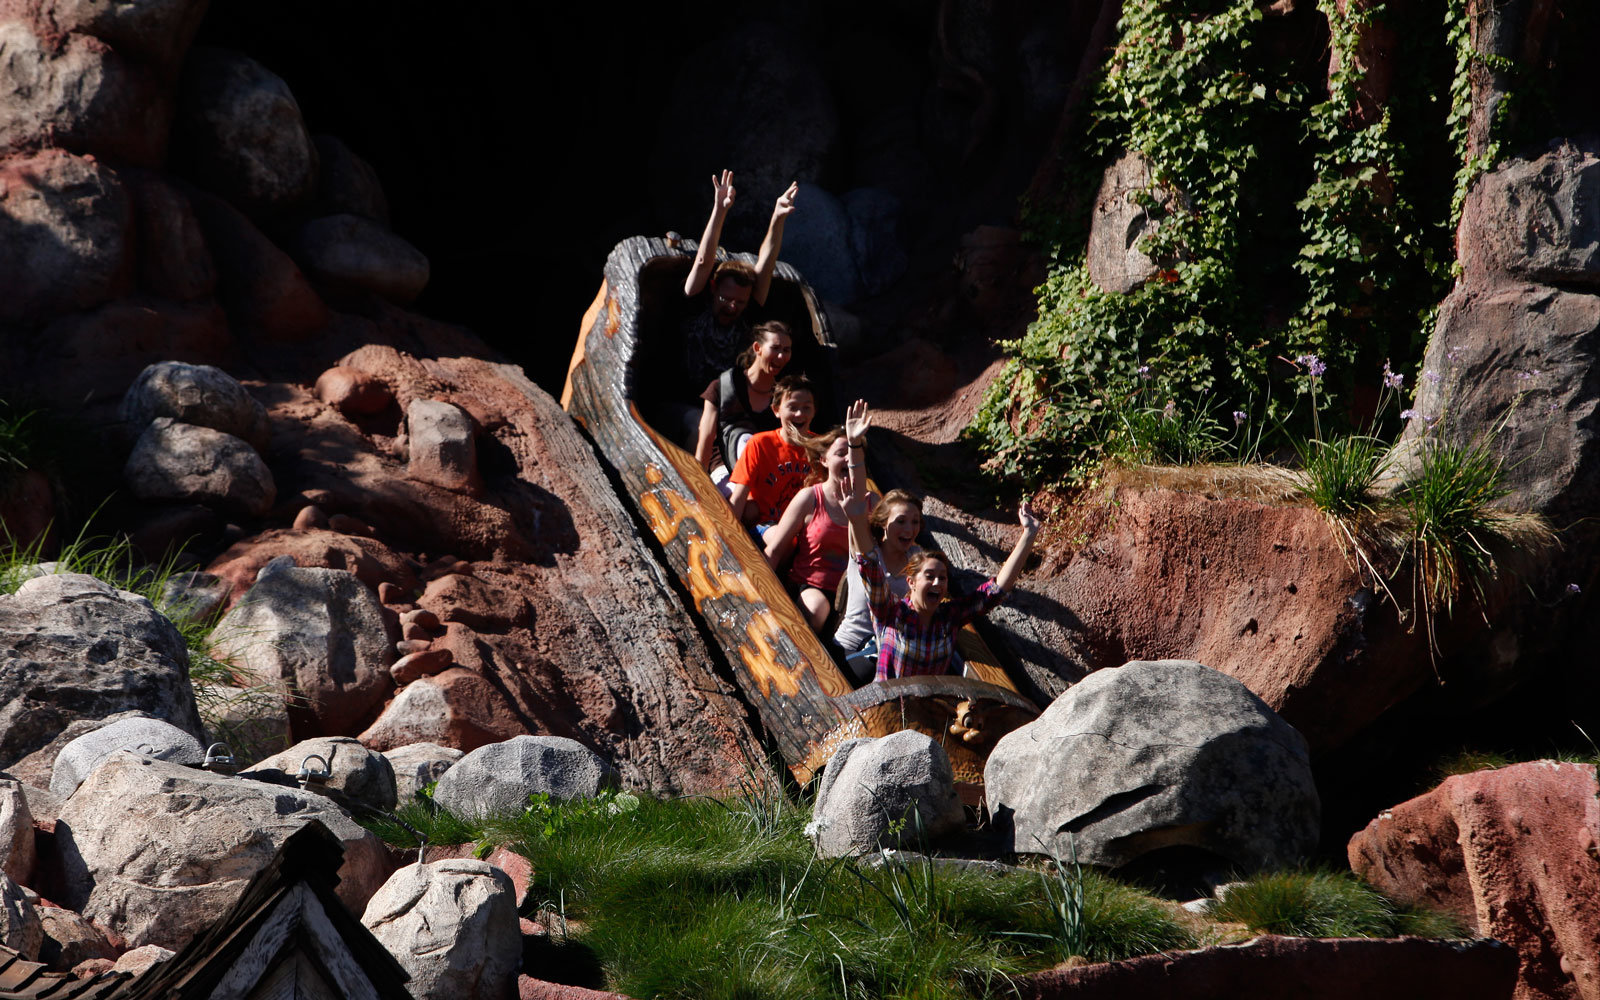 Splash Mountain ride